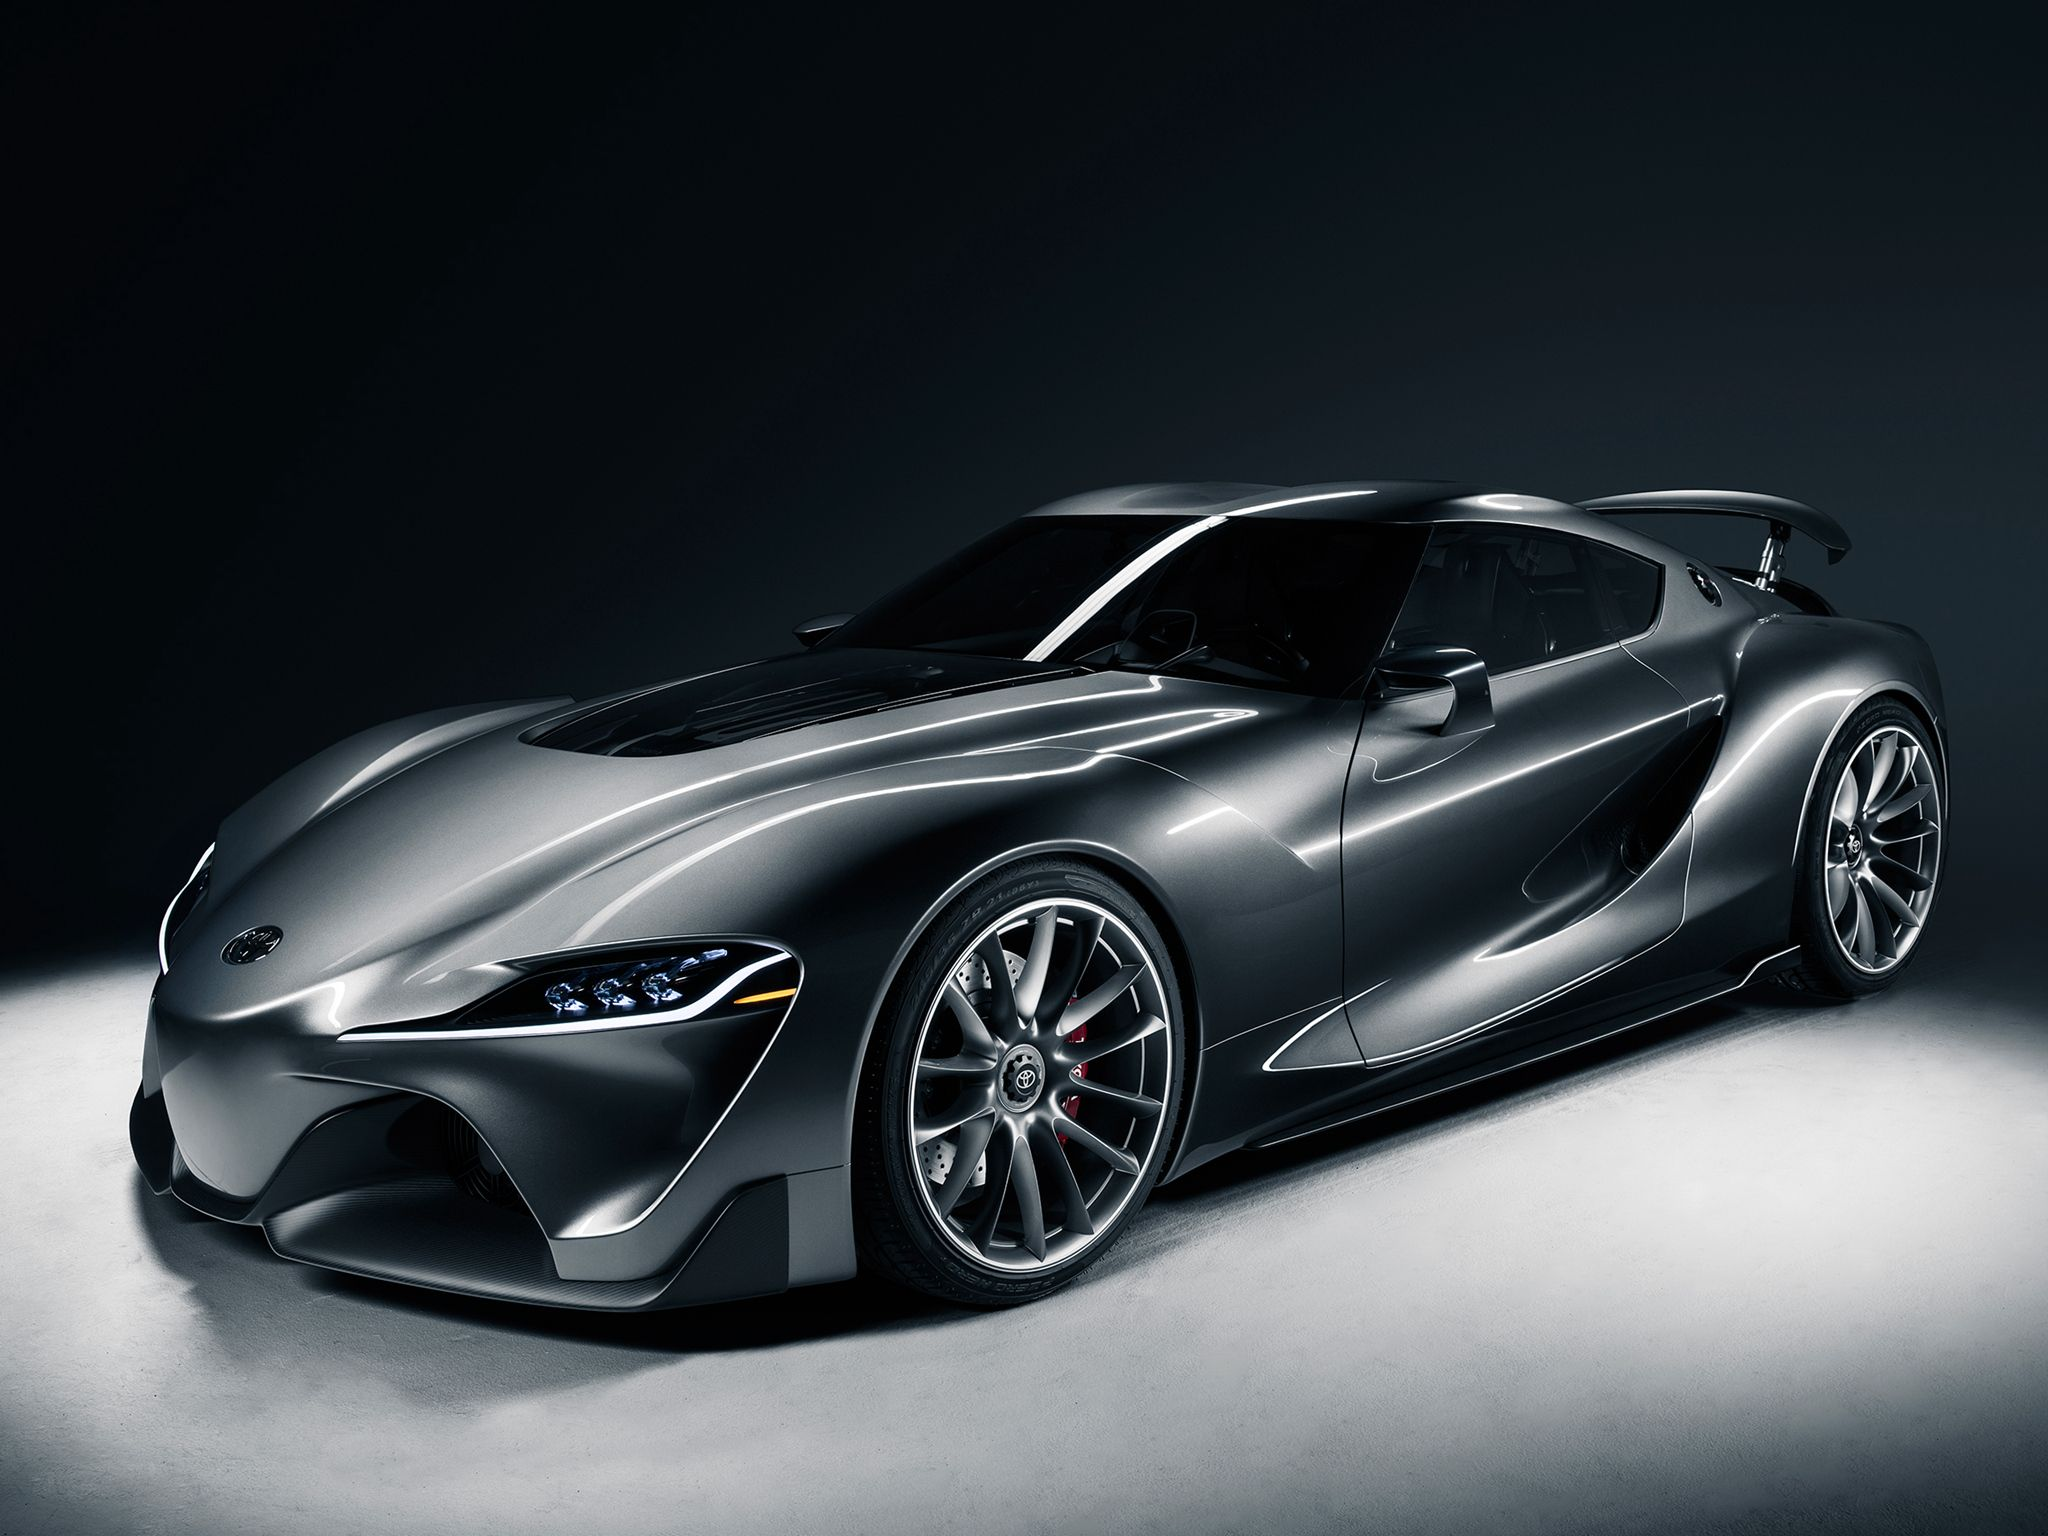 2014 Toyota Ft 1 Graphite Concept New Toyota Supra Concept Cars Super Cars 2014 toyota ft 1 vision gt 2